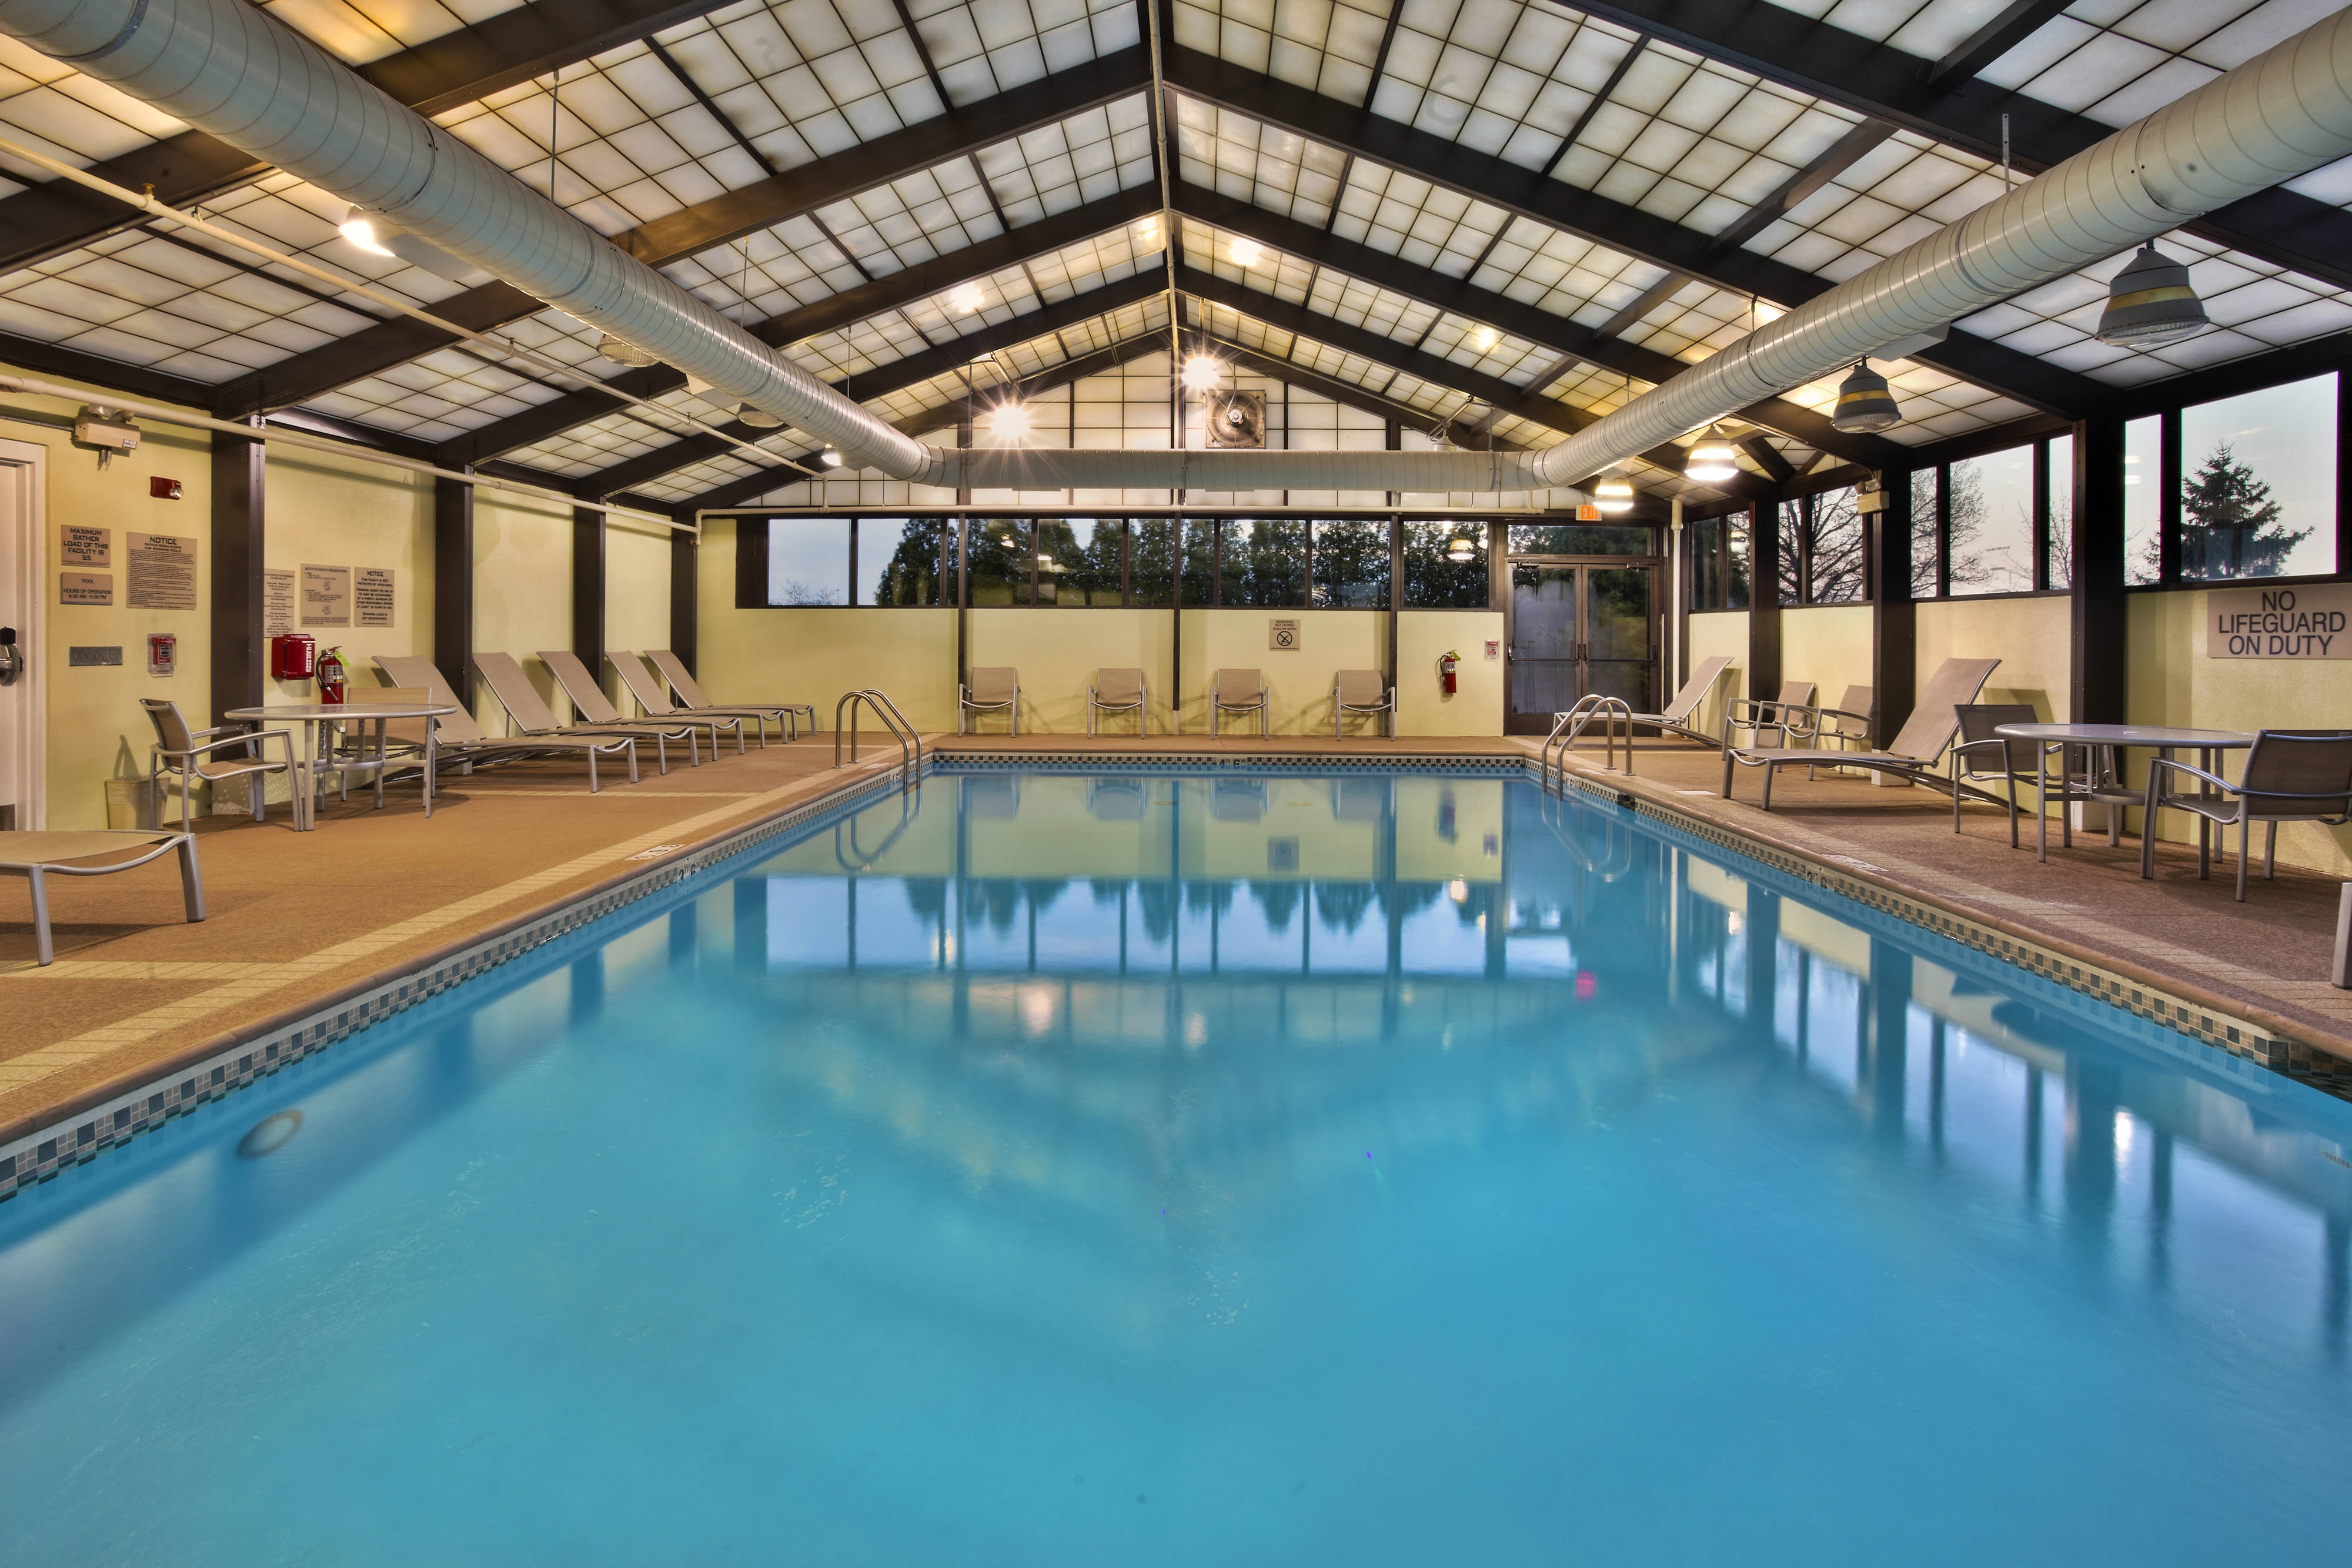 SpringHill Suites Chicago Southwest at Burr Ridge/Hinsdale Indoor Pool